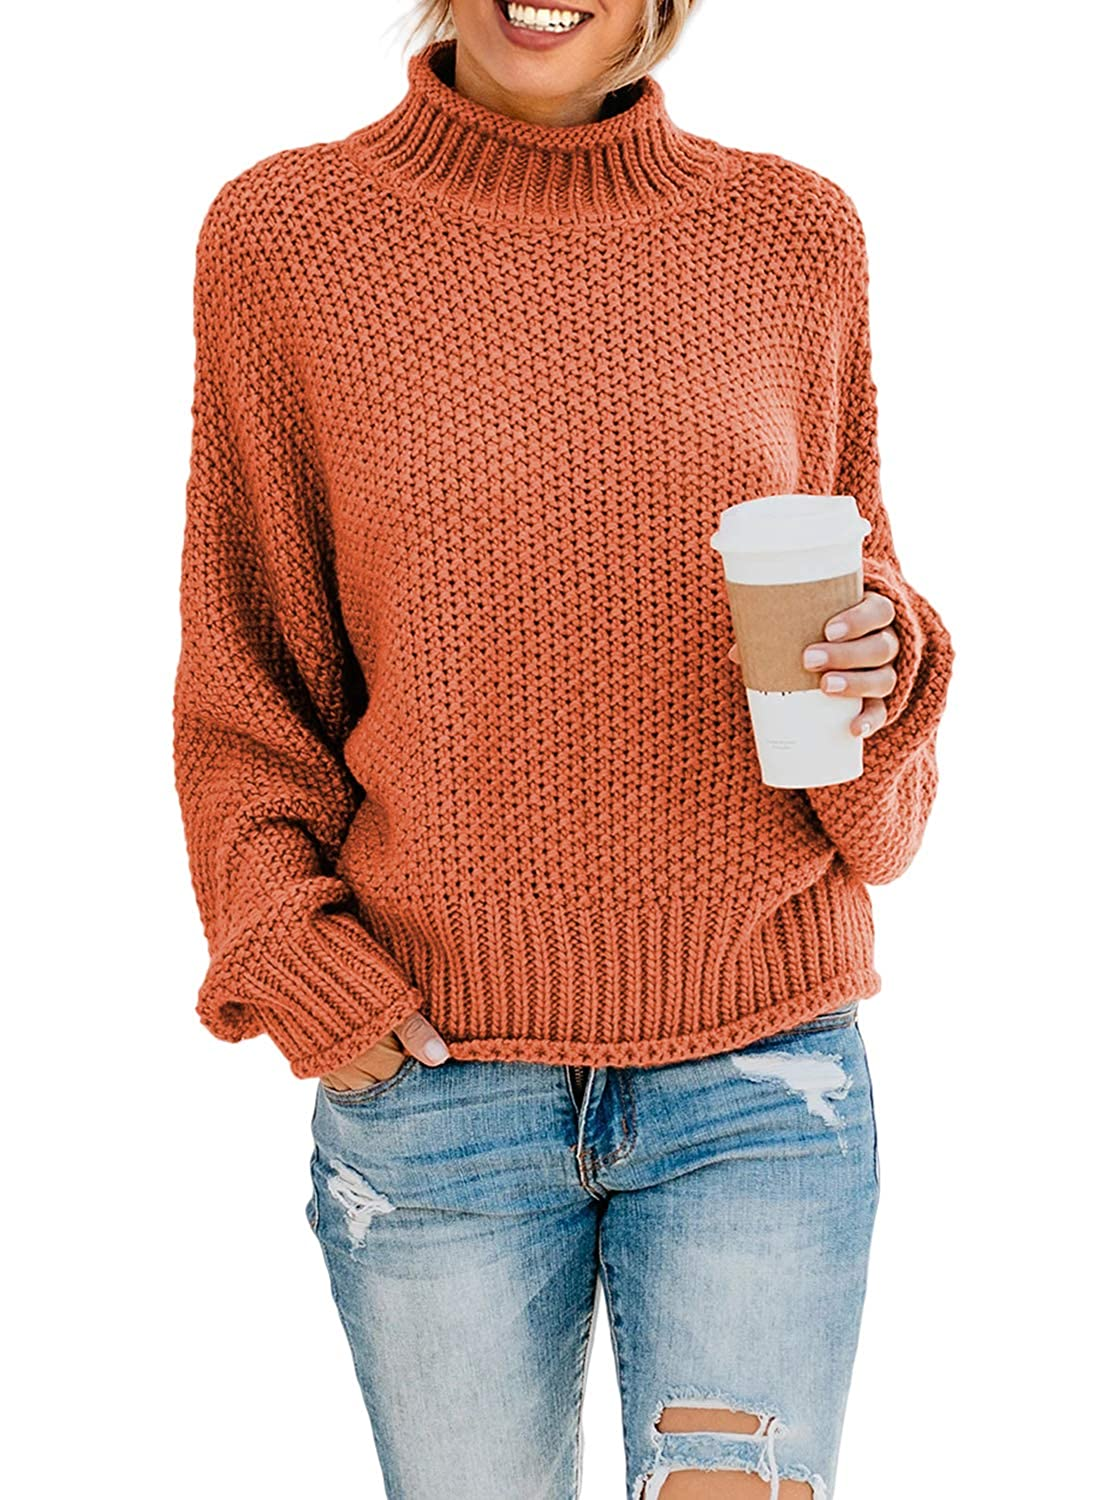 Dearlove Women Long Sleeve Turtleneck Chunky Cable Knit Sweaters Slit Pullover Tops